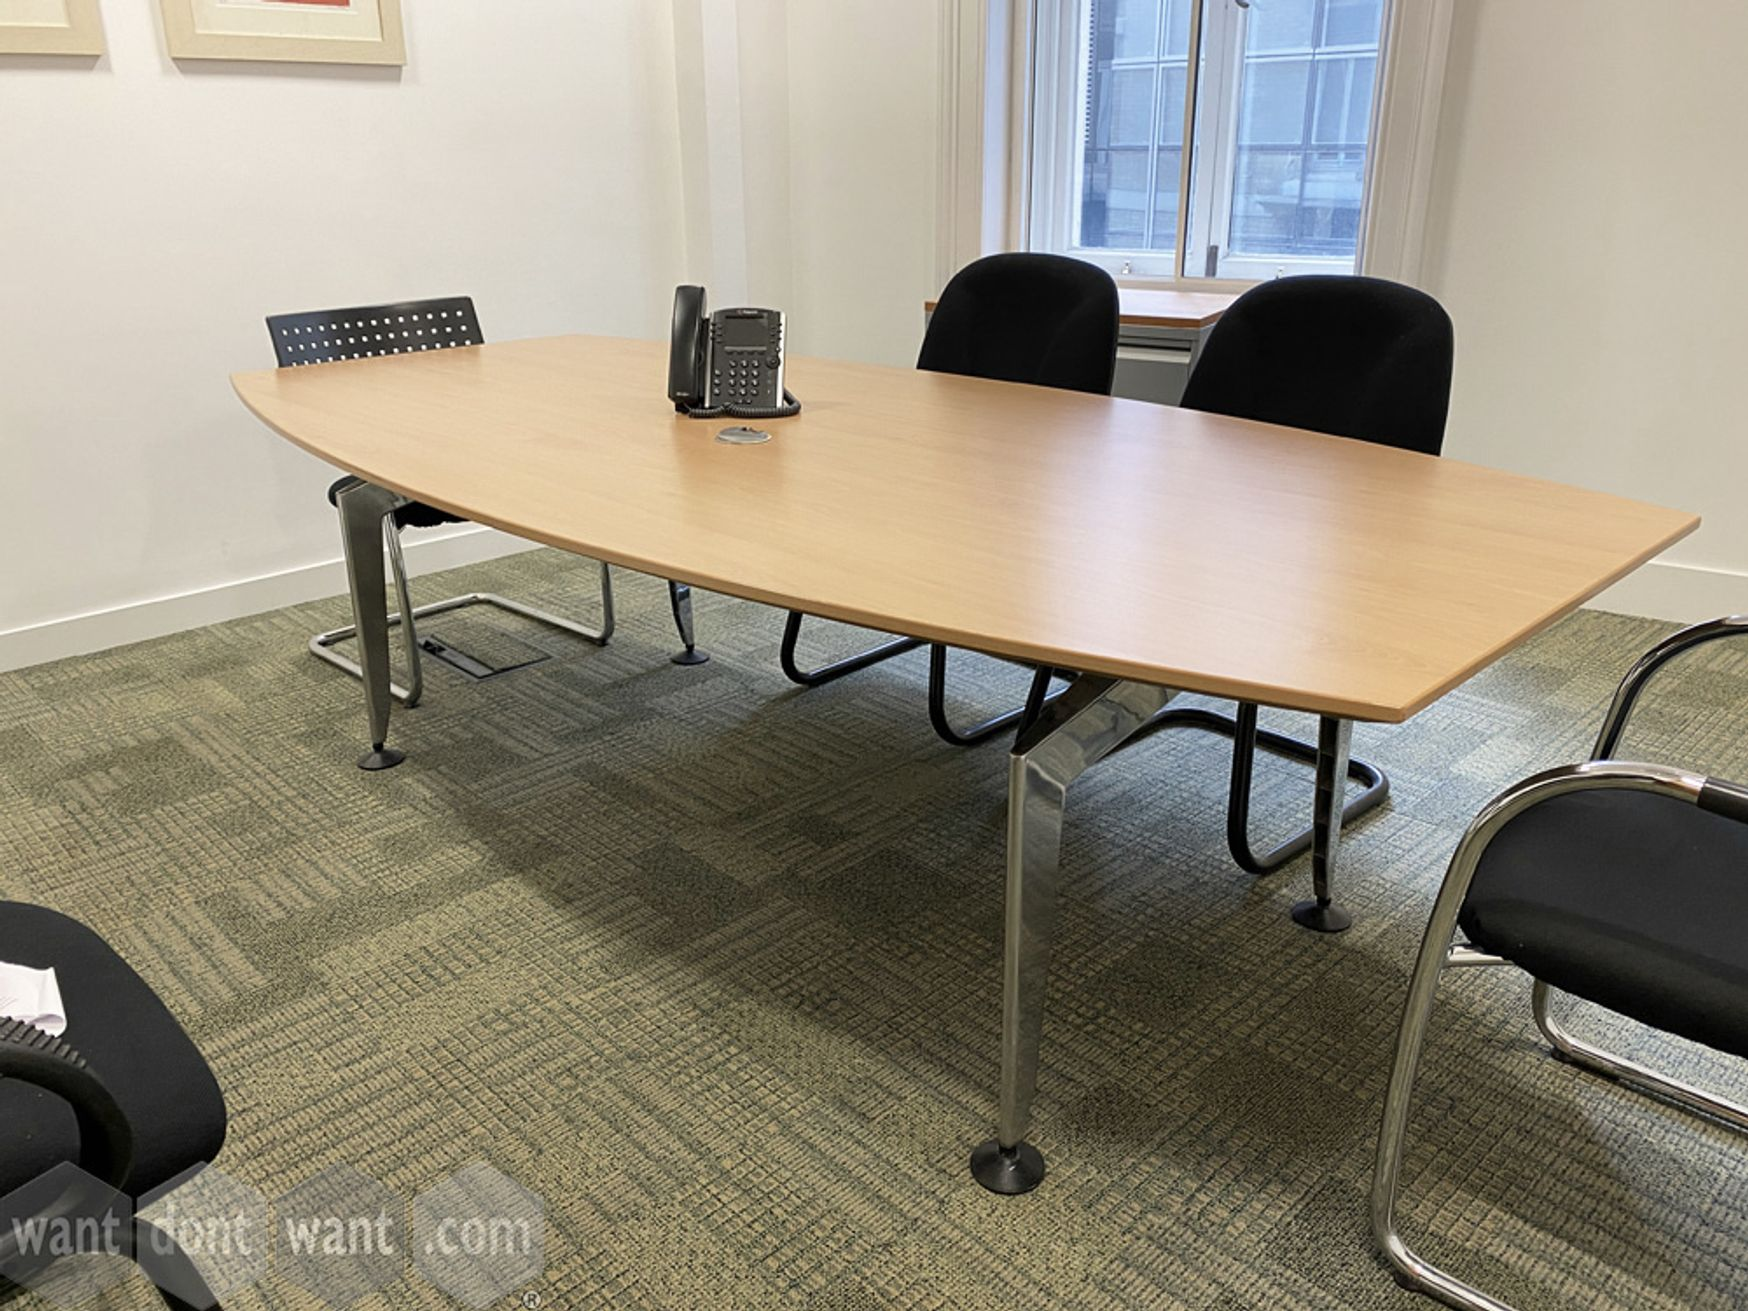 Used barrel-shaped meeting table with contemporary style chrome legs. 2400mm x 1200mm